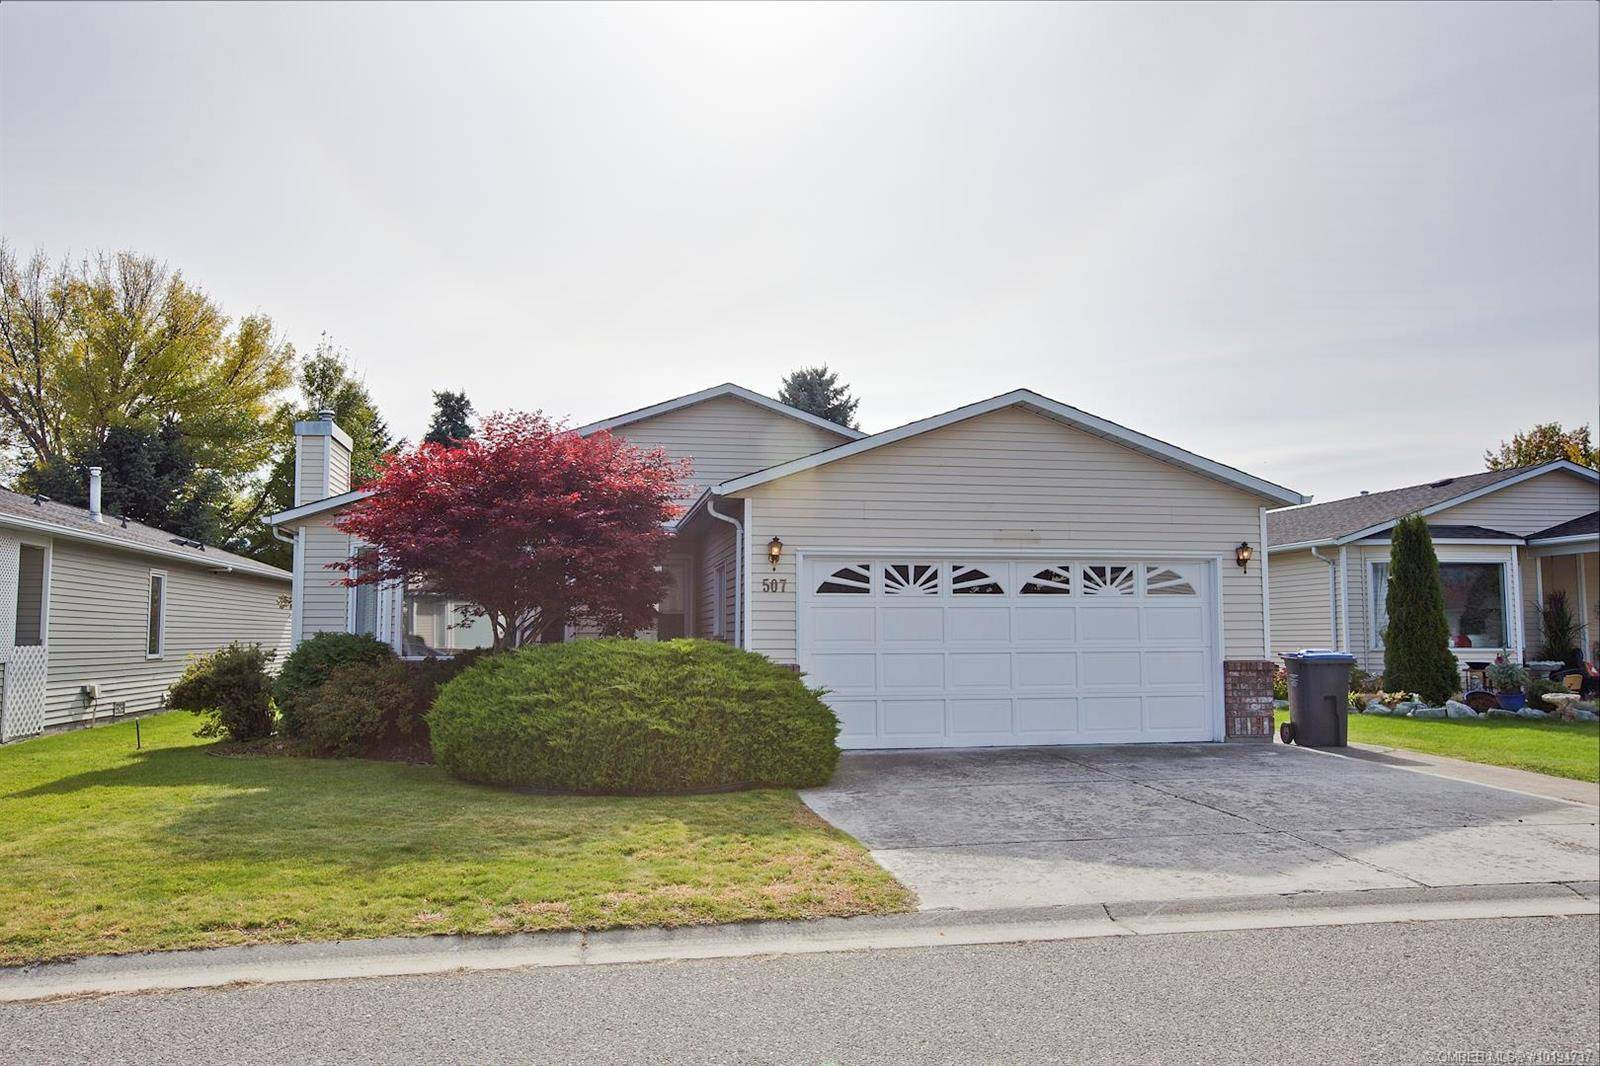 House for sale at 1255 Raymer Ave Unit 507 Kelowna British Columbia - MLS: 10194737